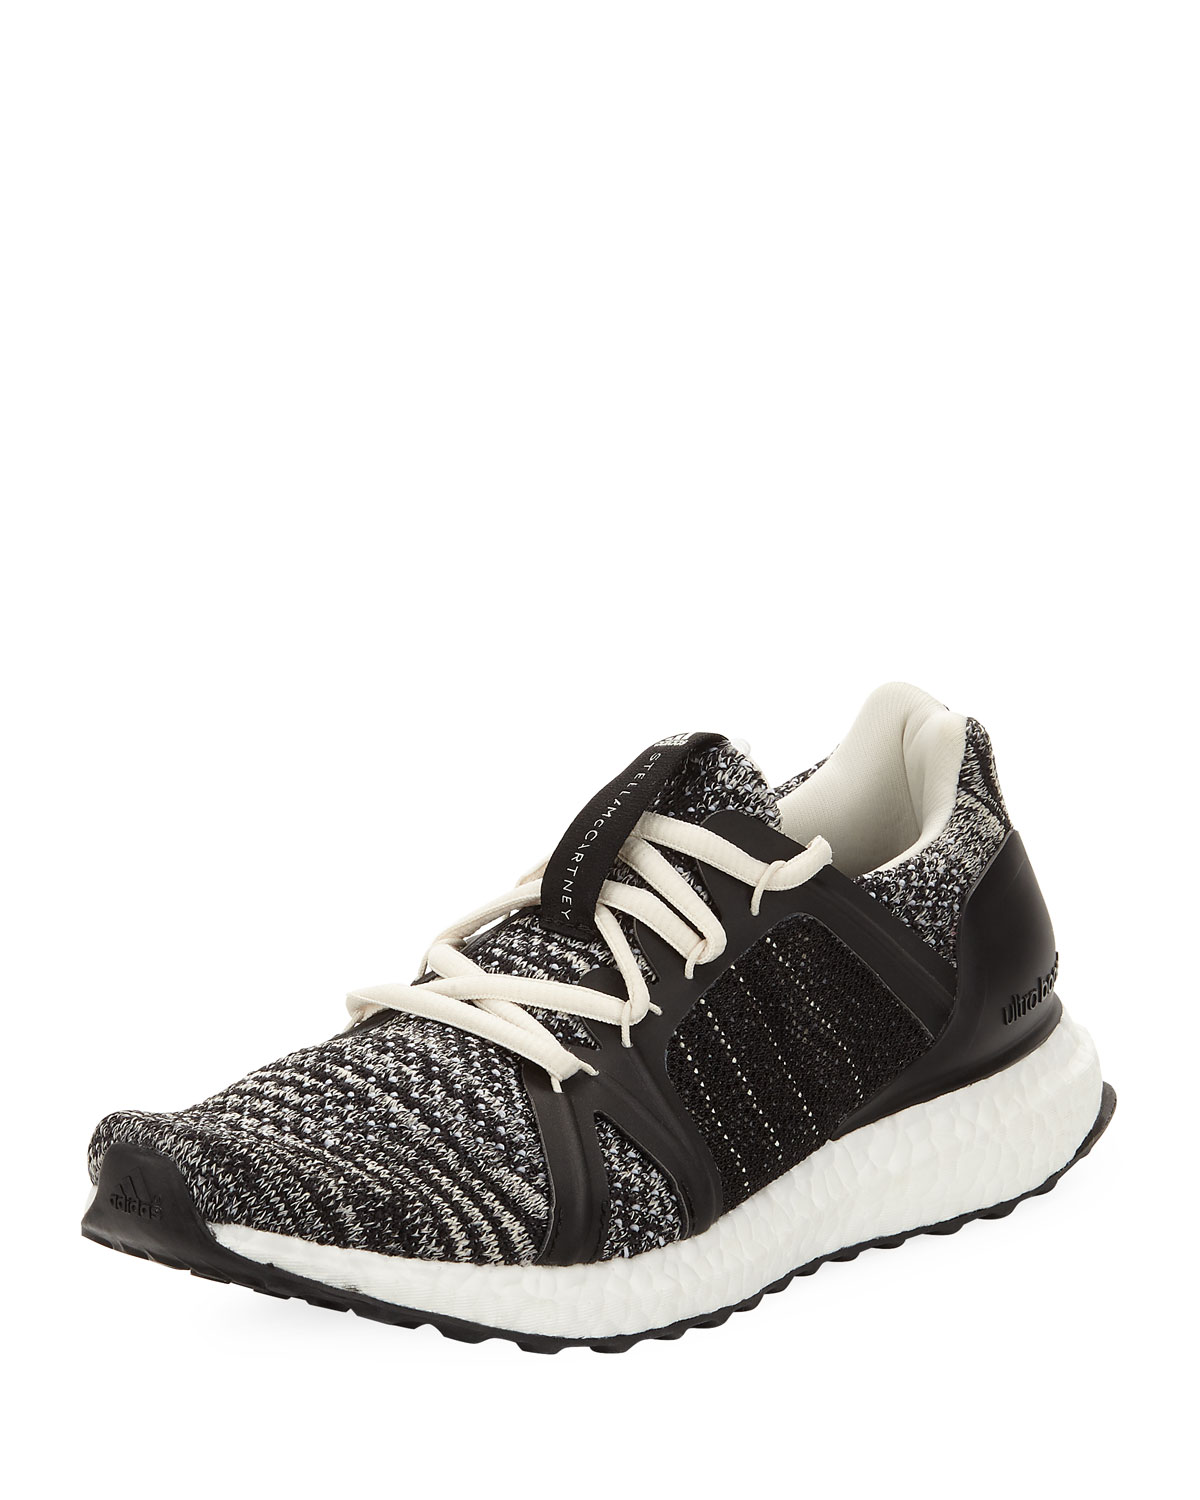 adidas by Stella McCartney Ultra Boost Parley Knit Trainer Sneakers ... abbc0d98713da